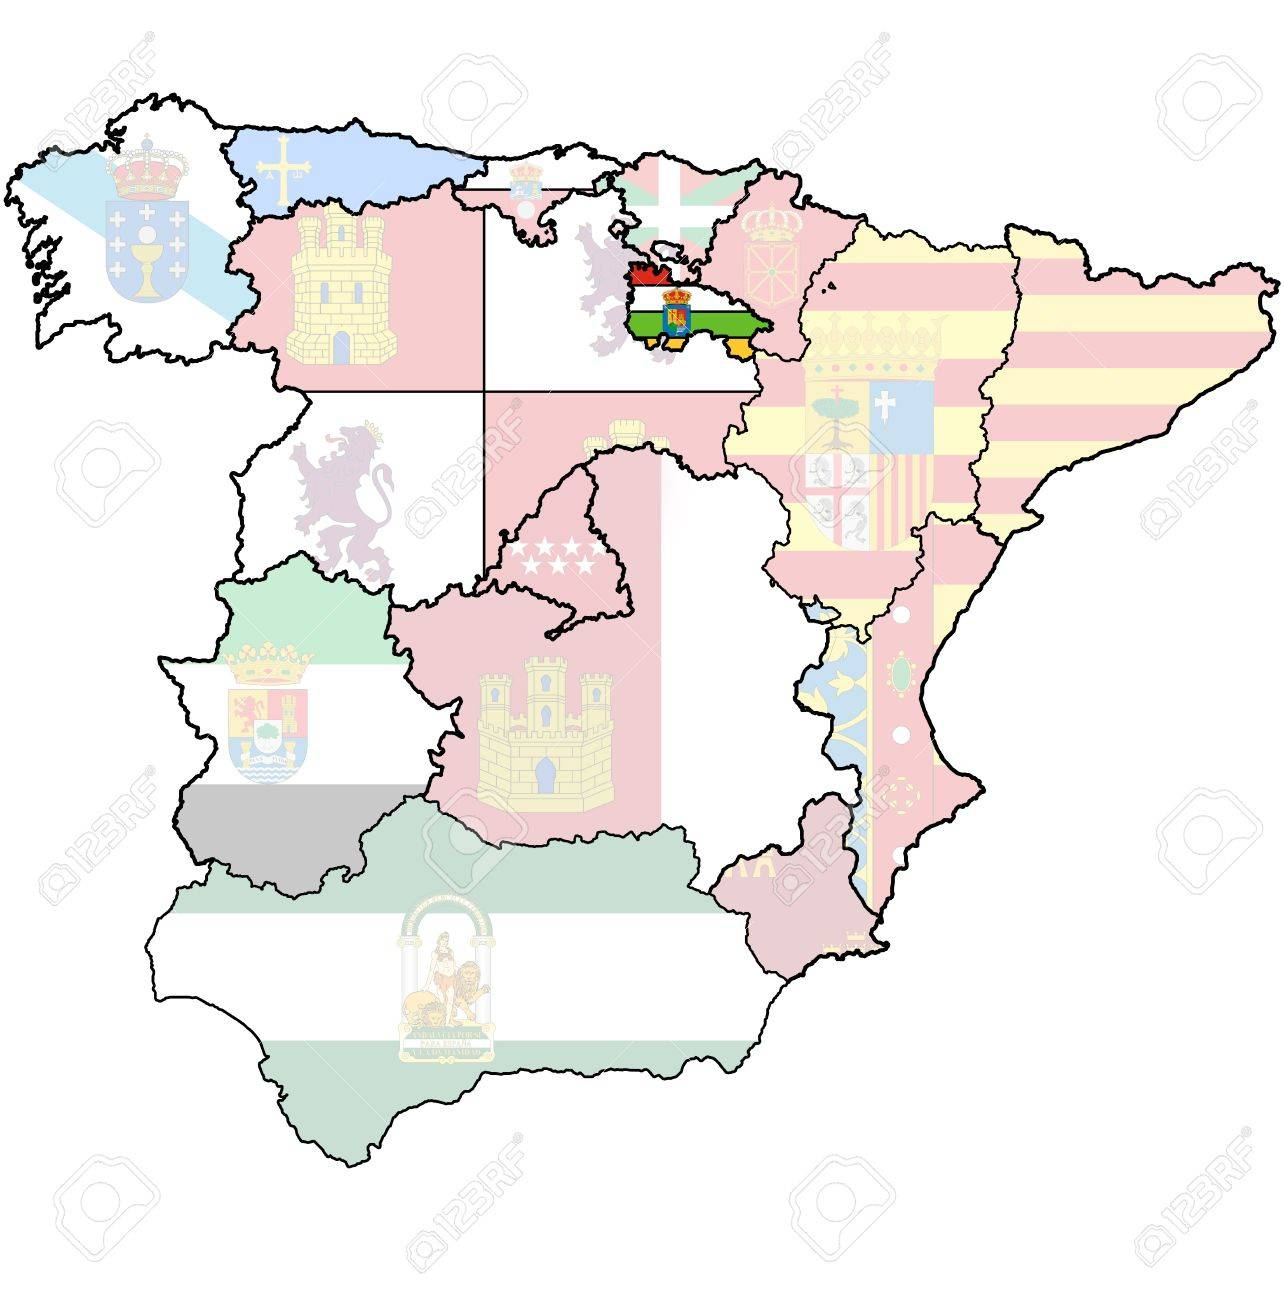 la rioja region on administration map of regions of spain with flags and emblems Stock Photo - 16551316